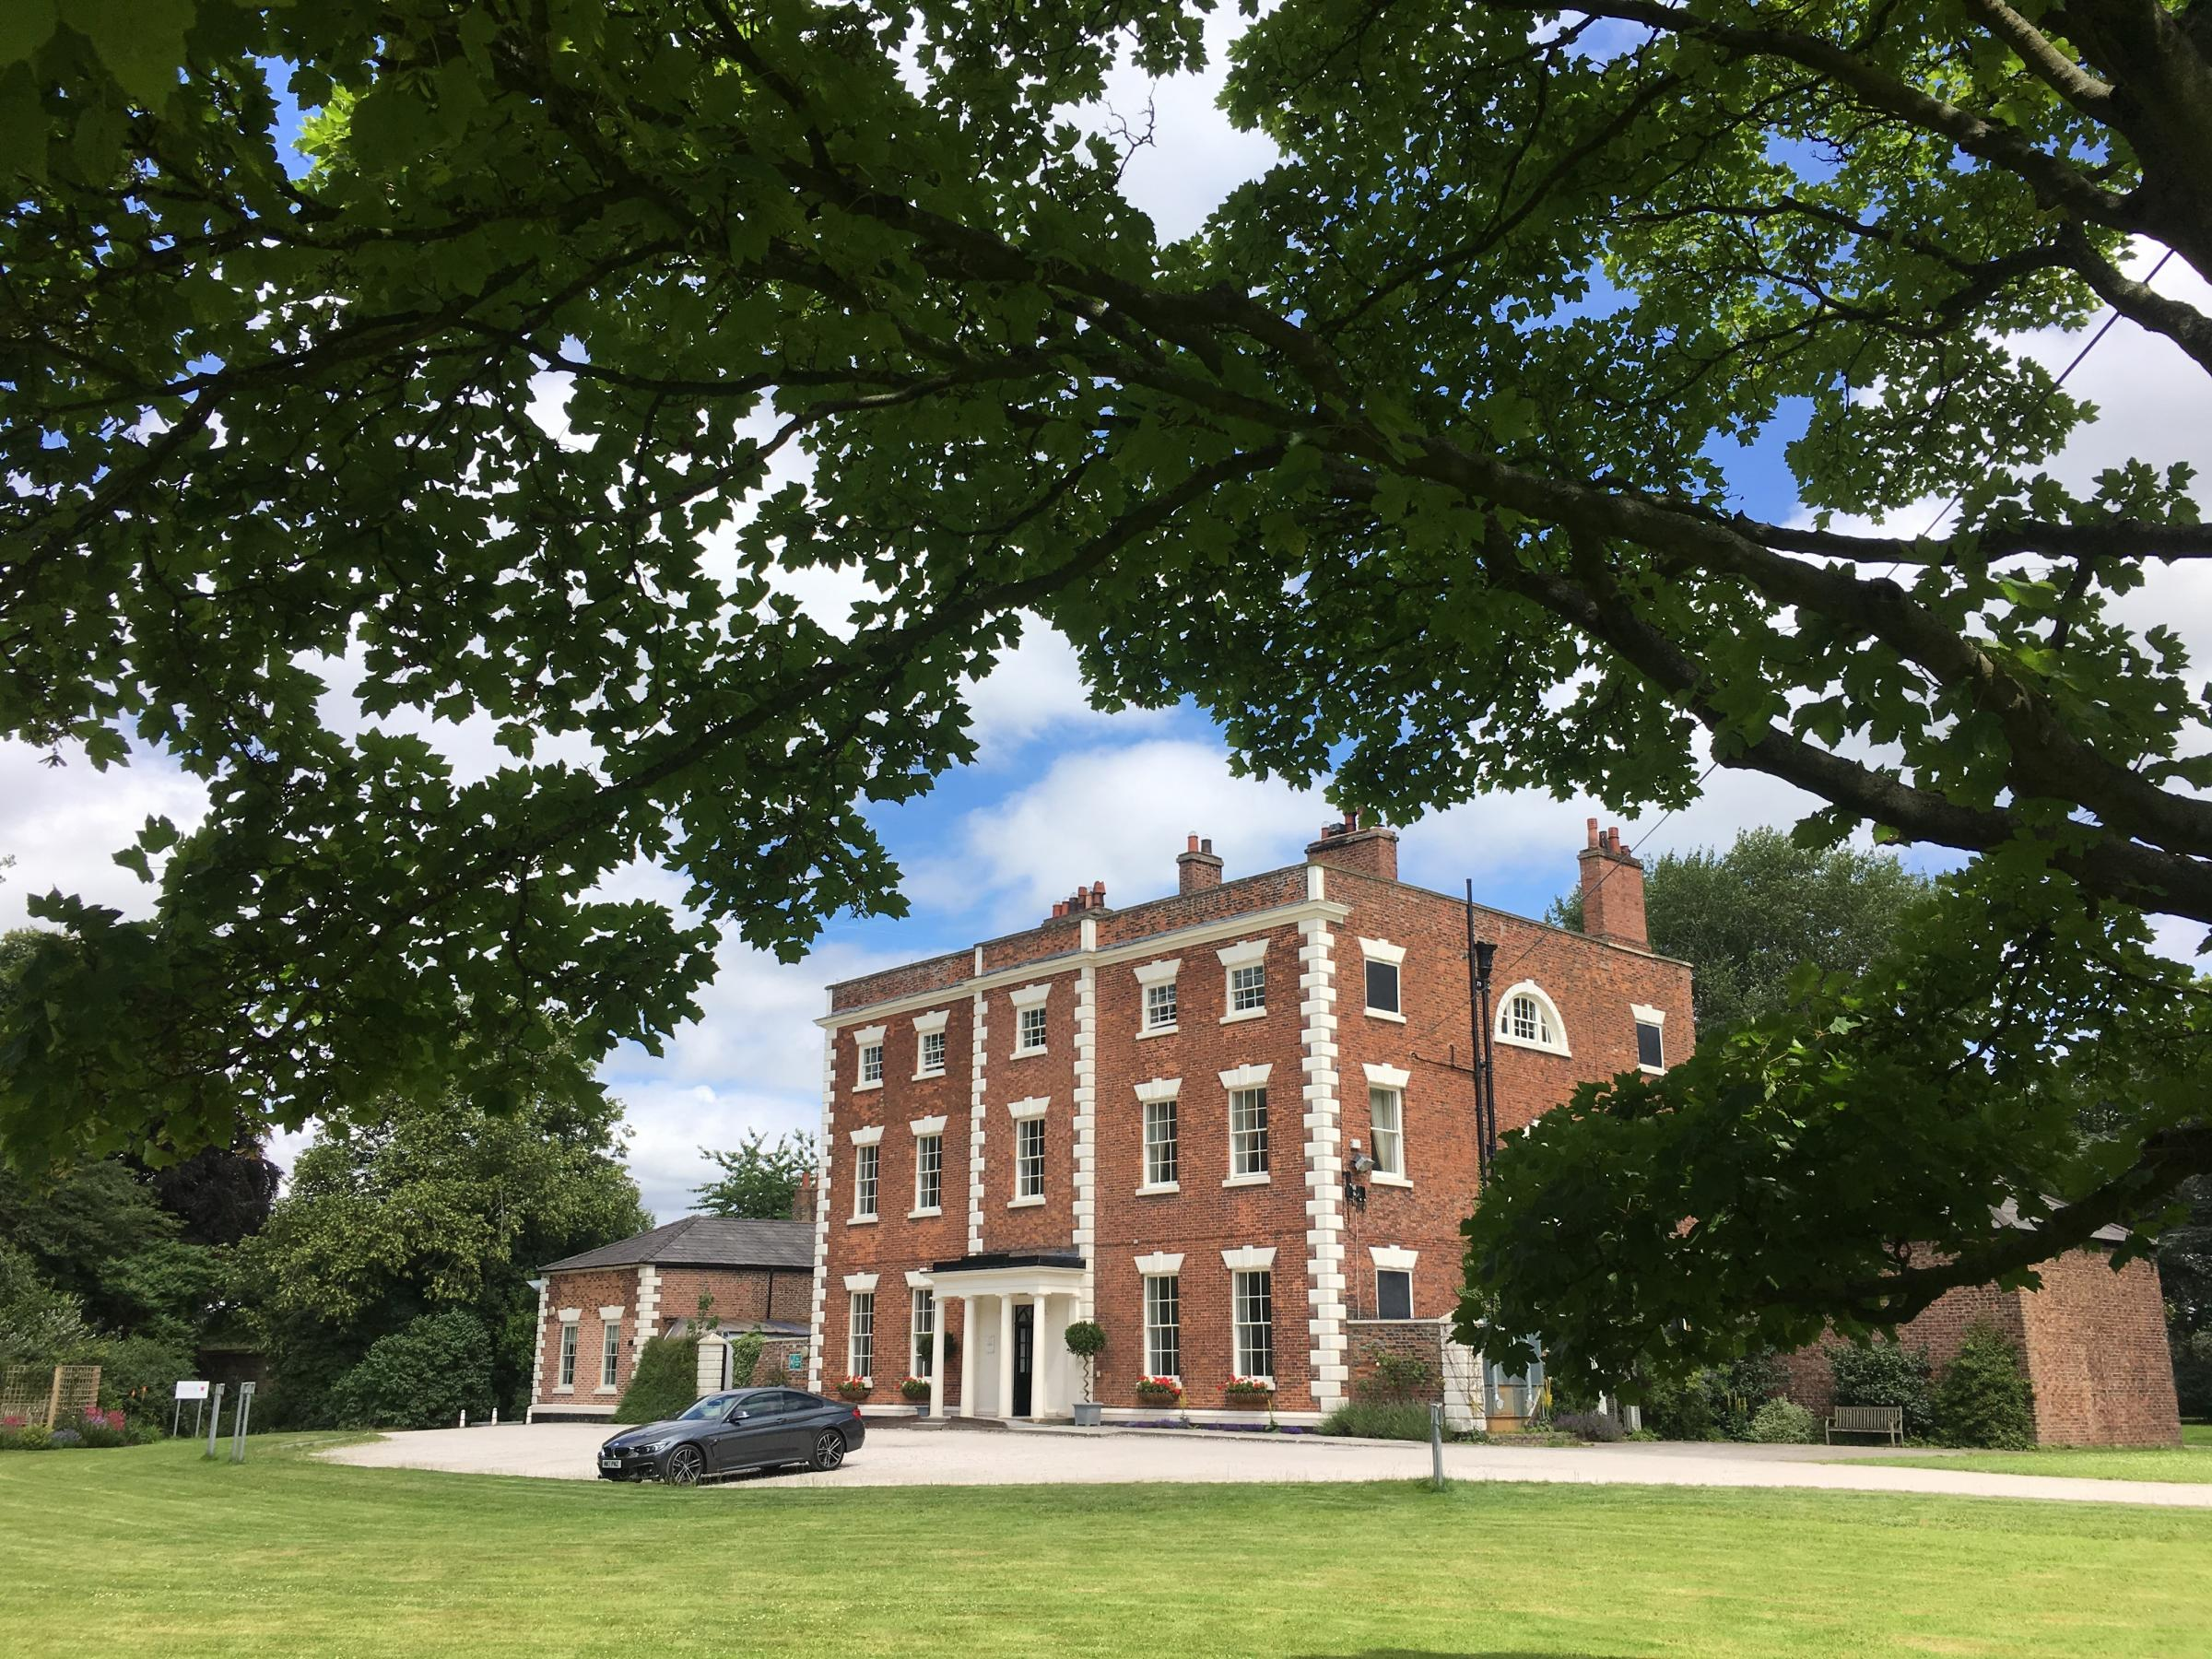 The new YHA Chester Trafford Hall hostel opens on July 30.